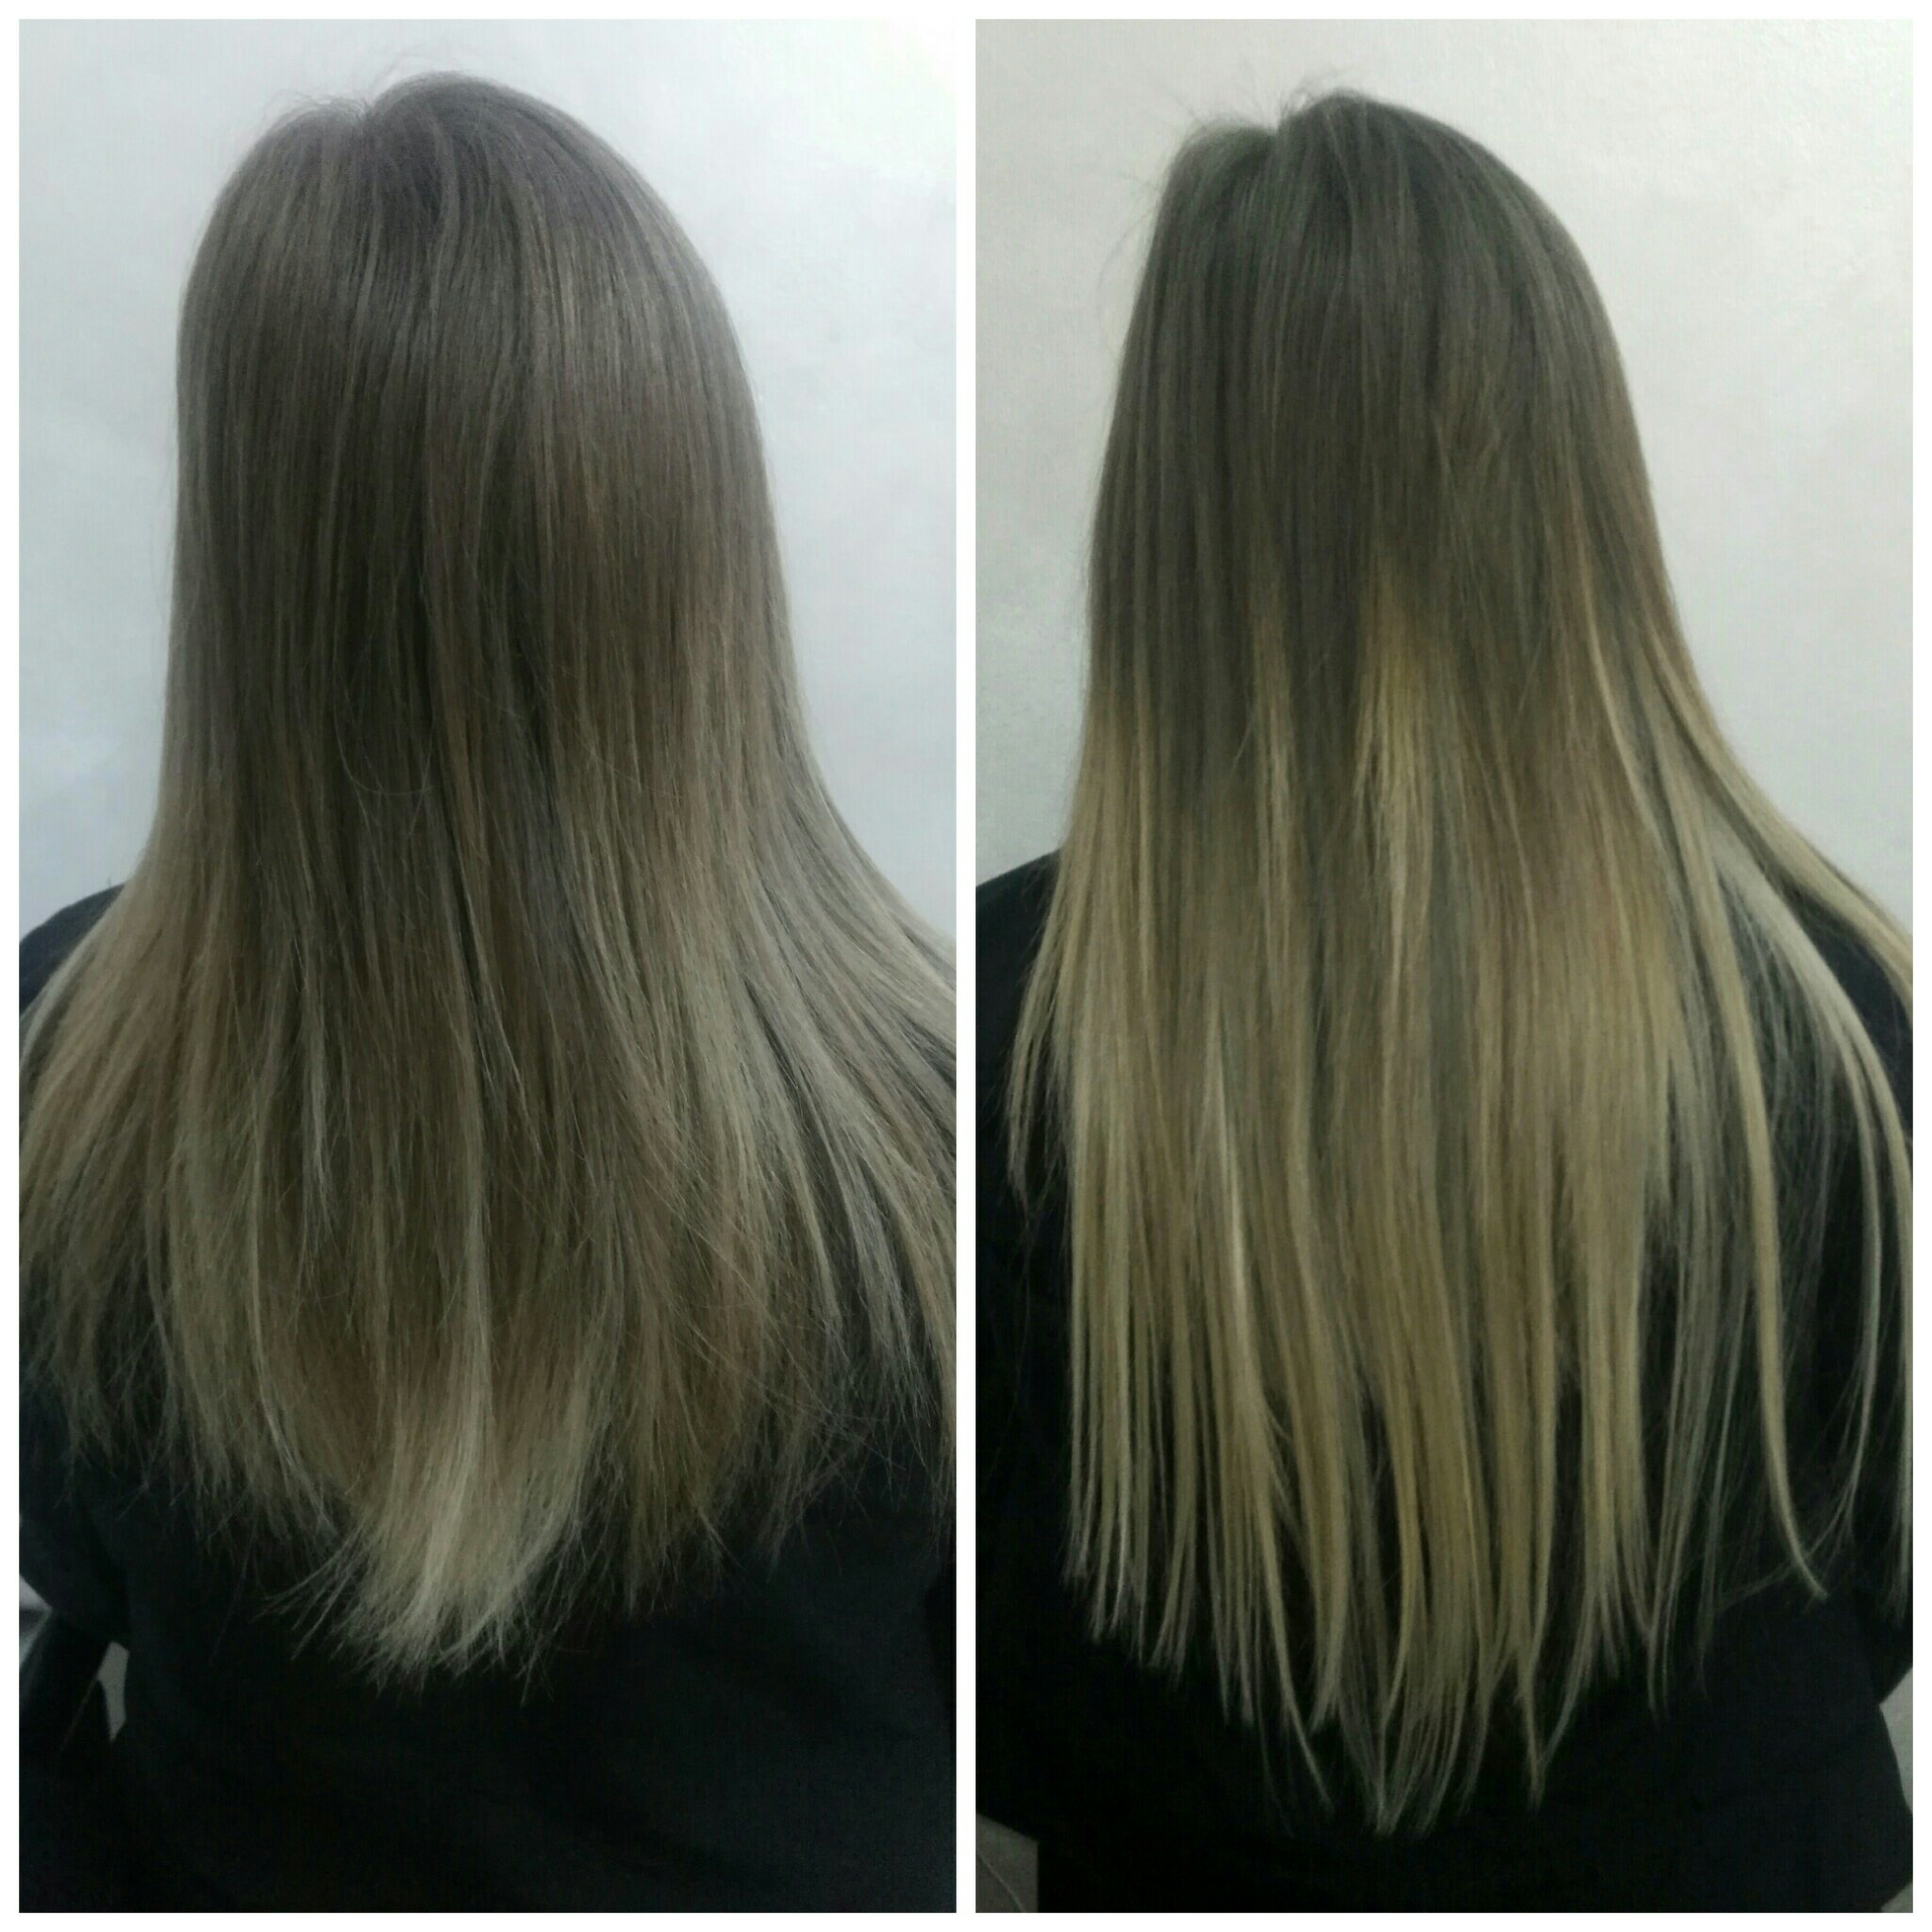 Balayage 860 Silky Straight 130g Clip In Human Hair Extensions